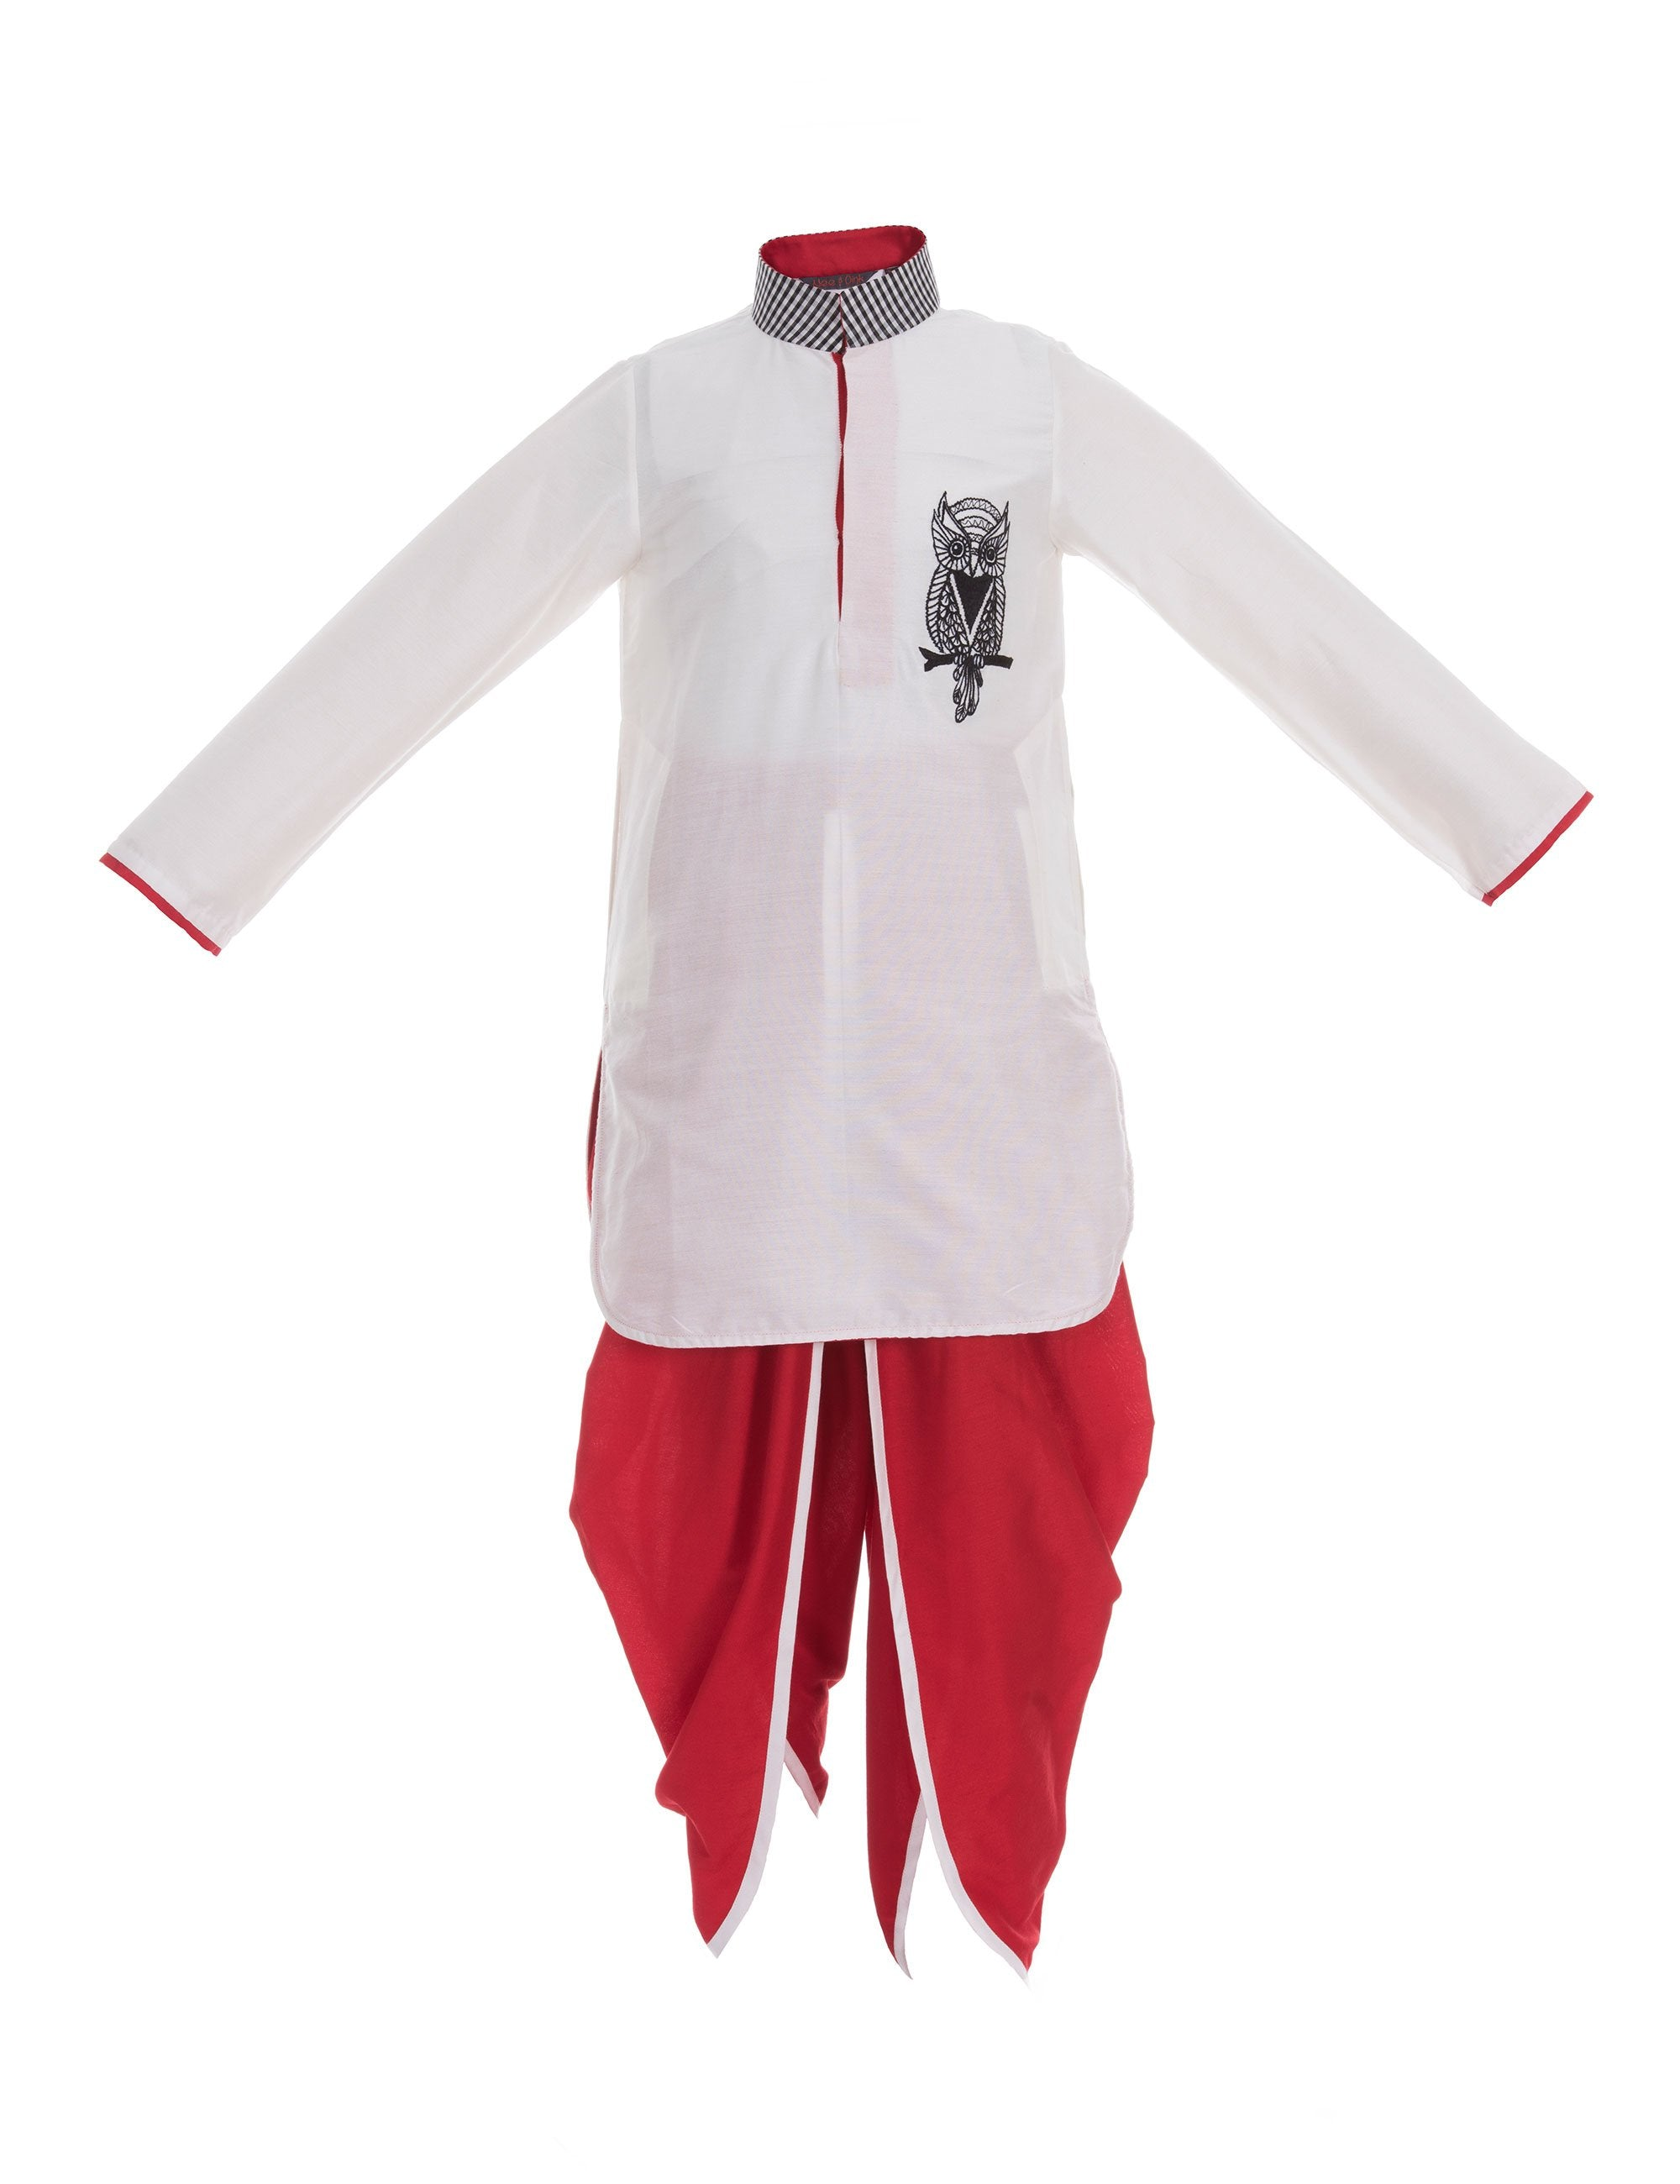 Owl Kurta/Dhoti Pants in White & Red for Boys